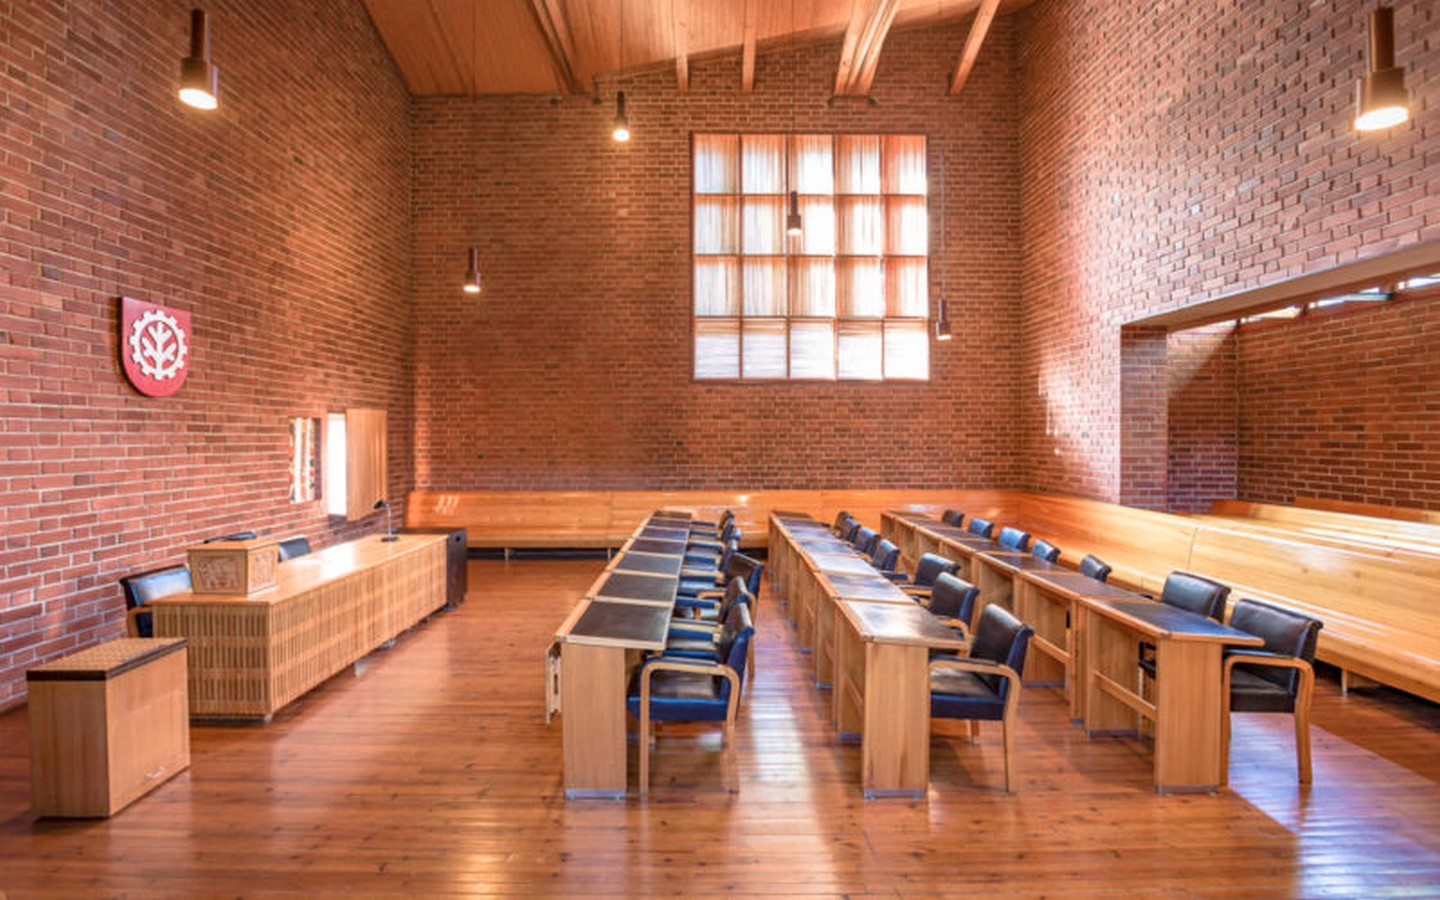 Saynatsalo Town Hall by Alvar Aalto: Collaboration in Architecture - Sheet8